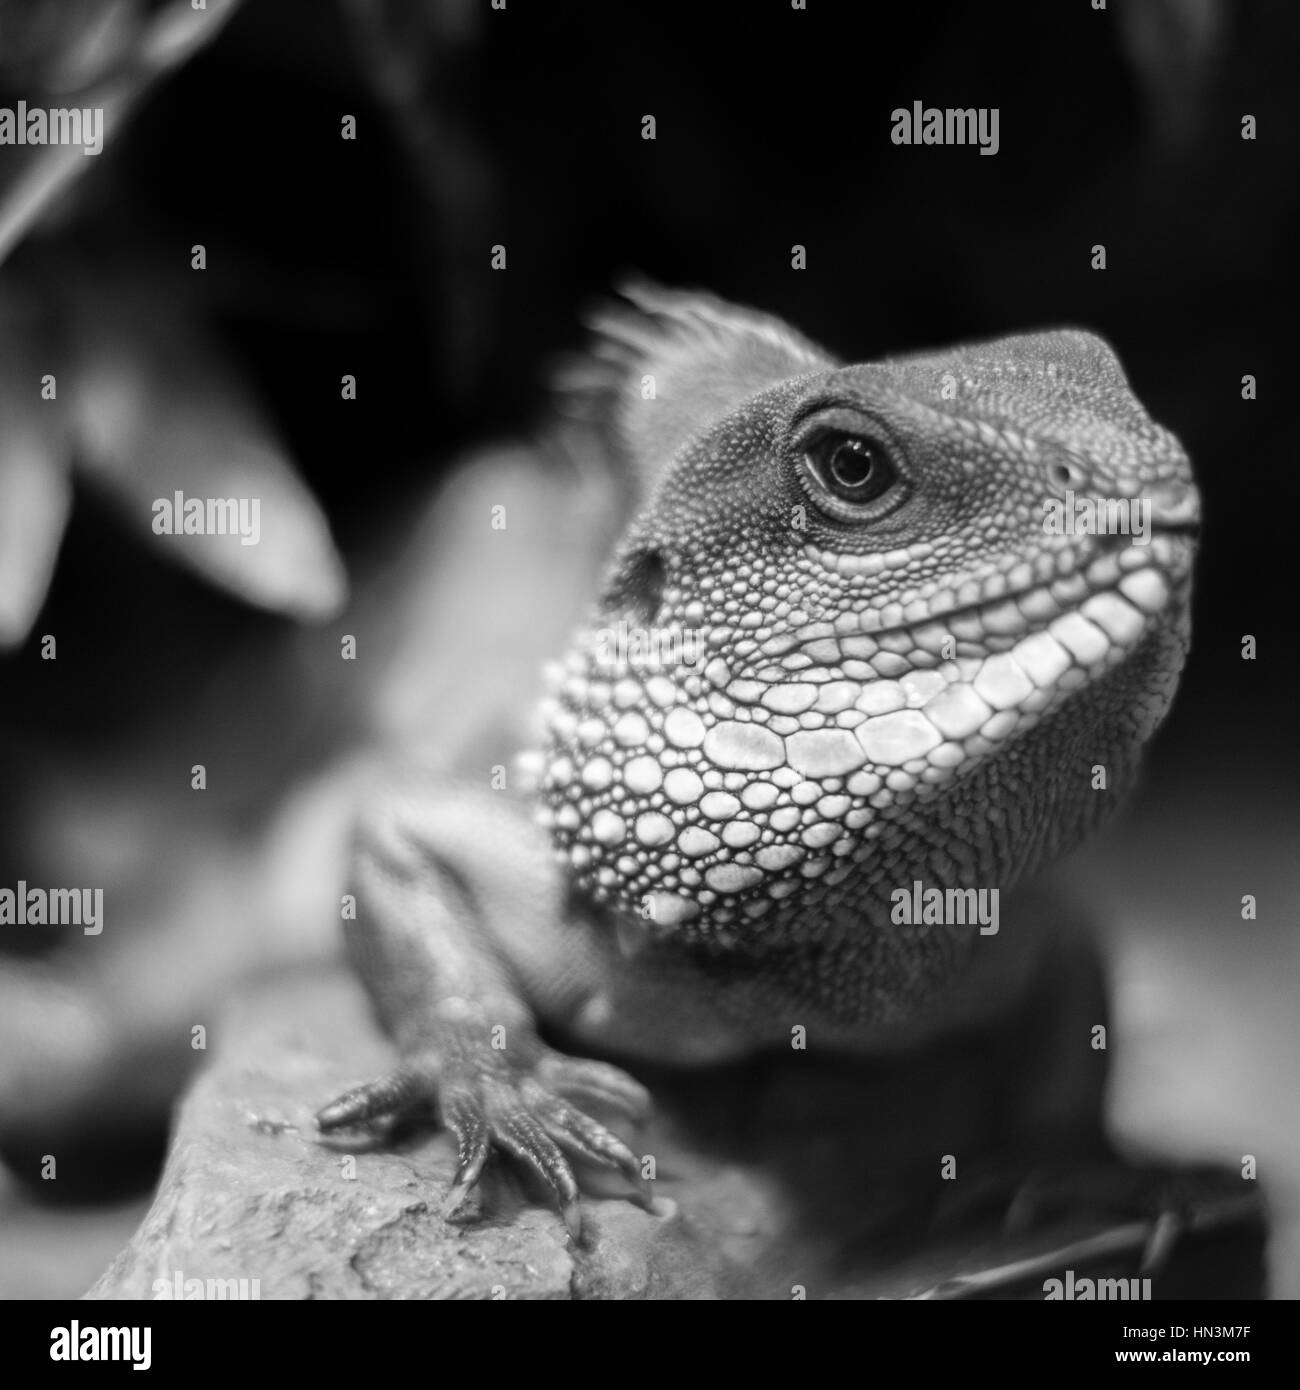 A large chameleon with defined scales - Stock Image